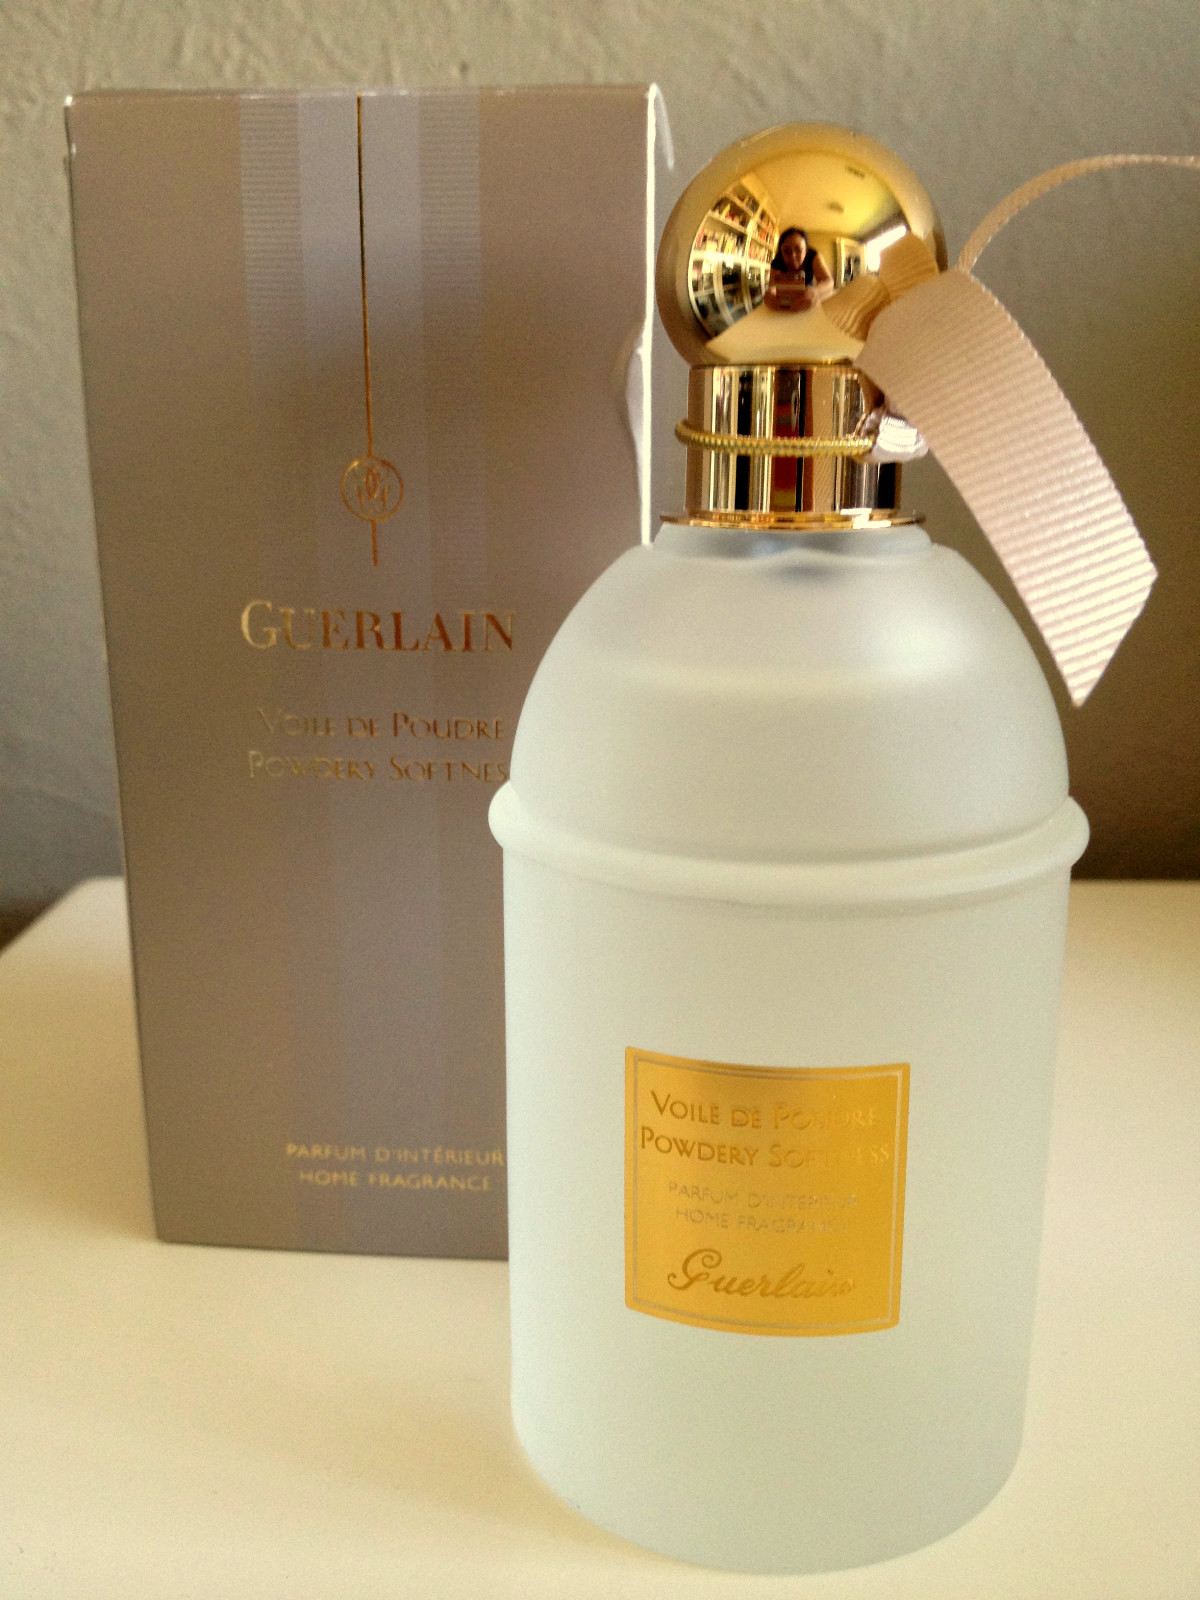 guerlain perfumes guerlain home fragrances les parfums d 39 interieur. Black Bedroom Furniture Sets. Home Design Ideas